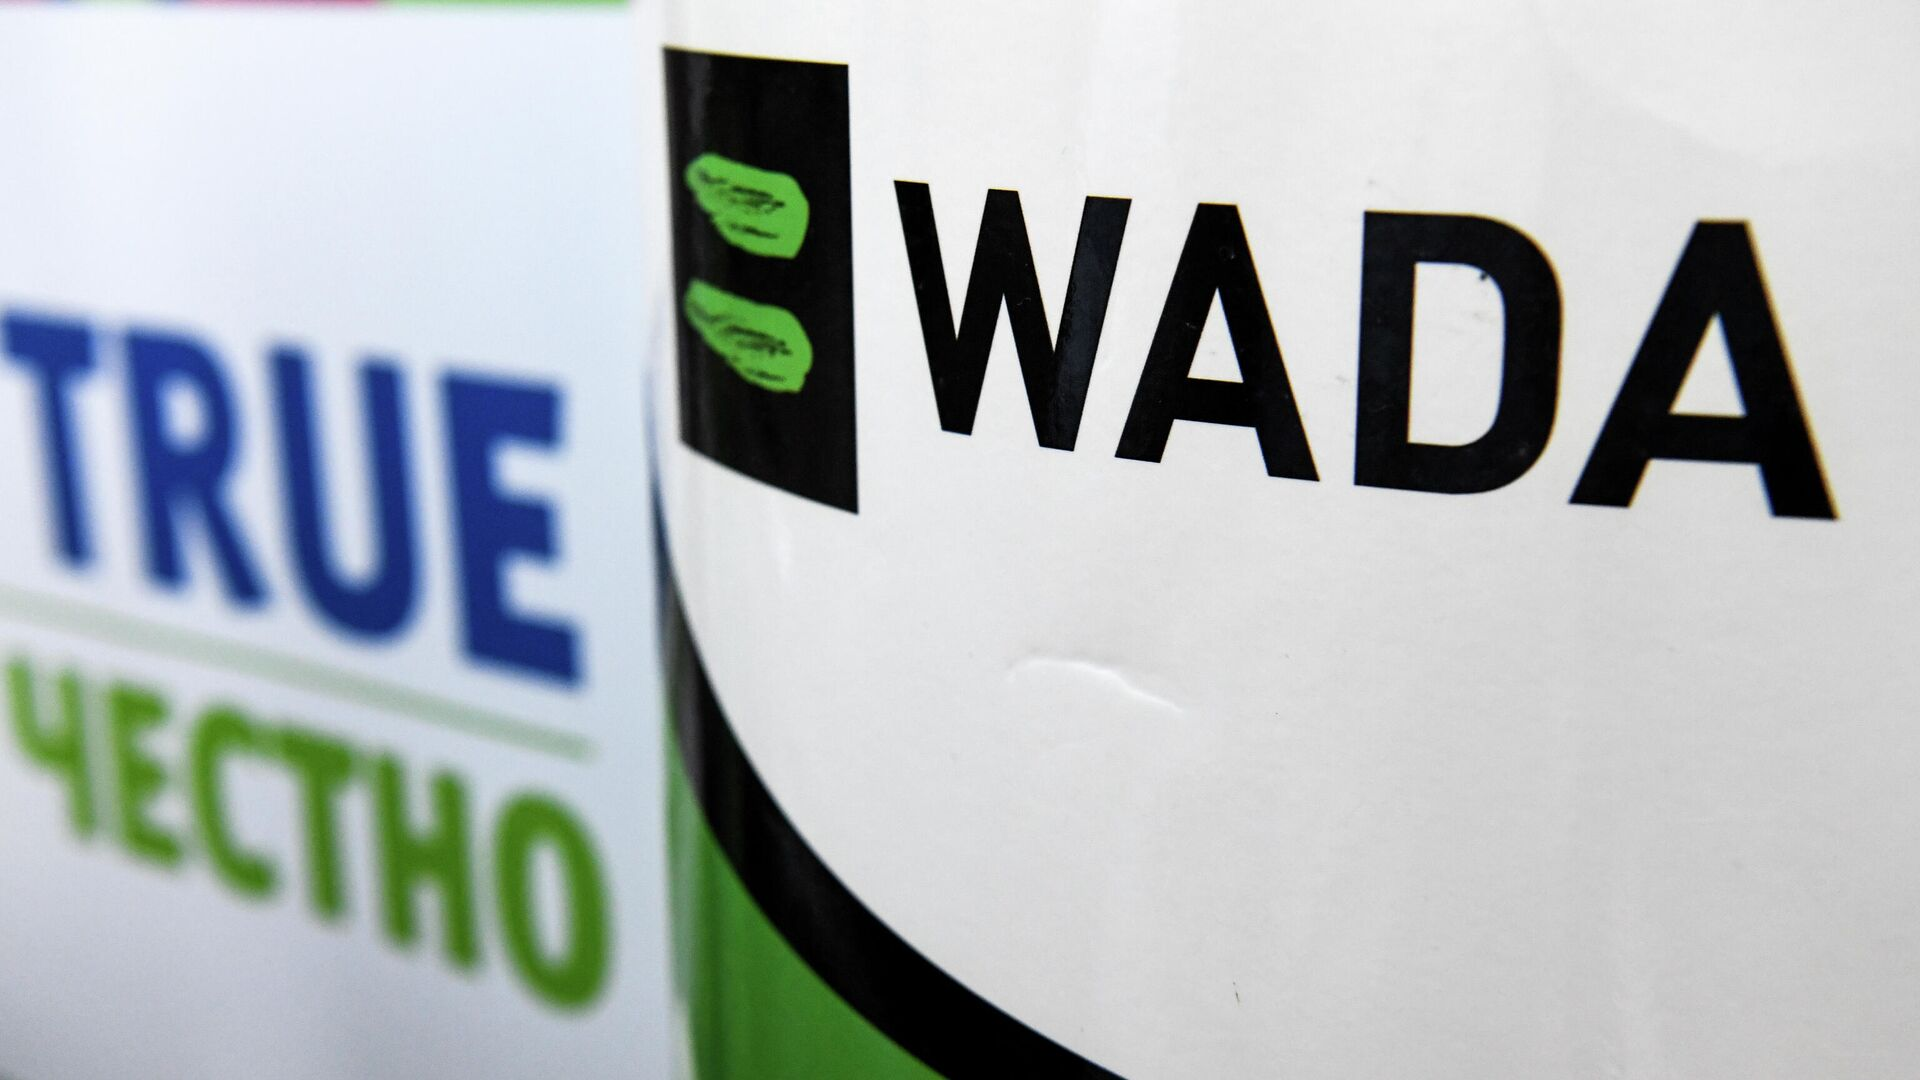 The World Anti-Doping Agency or WADA logo is pictured at the Russkaya Zima (Russian Winter) Athletics competition in Moscow on February 9, 2020. - The entire board of Russia's athletics federation has resigned as the government attempts to find a way out of the country's deepening doping crisis before this year's Olympic Games. (Photo by Kirill KUDRYAVTSEV / AFP) - РИА Новости, 1920, 27.01.2021